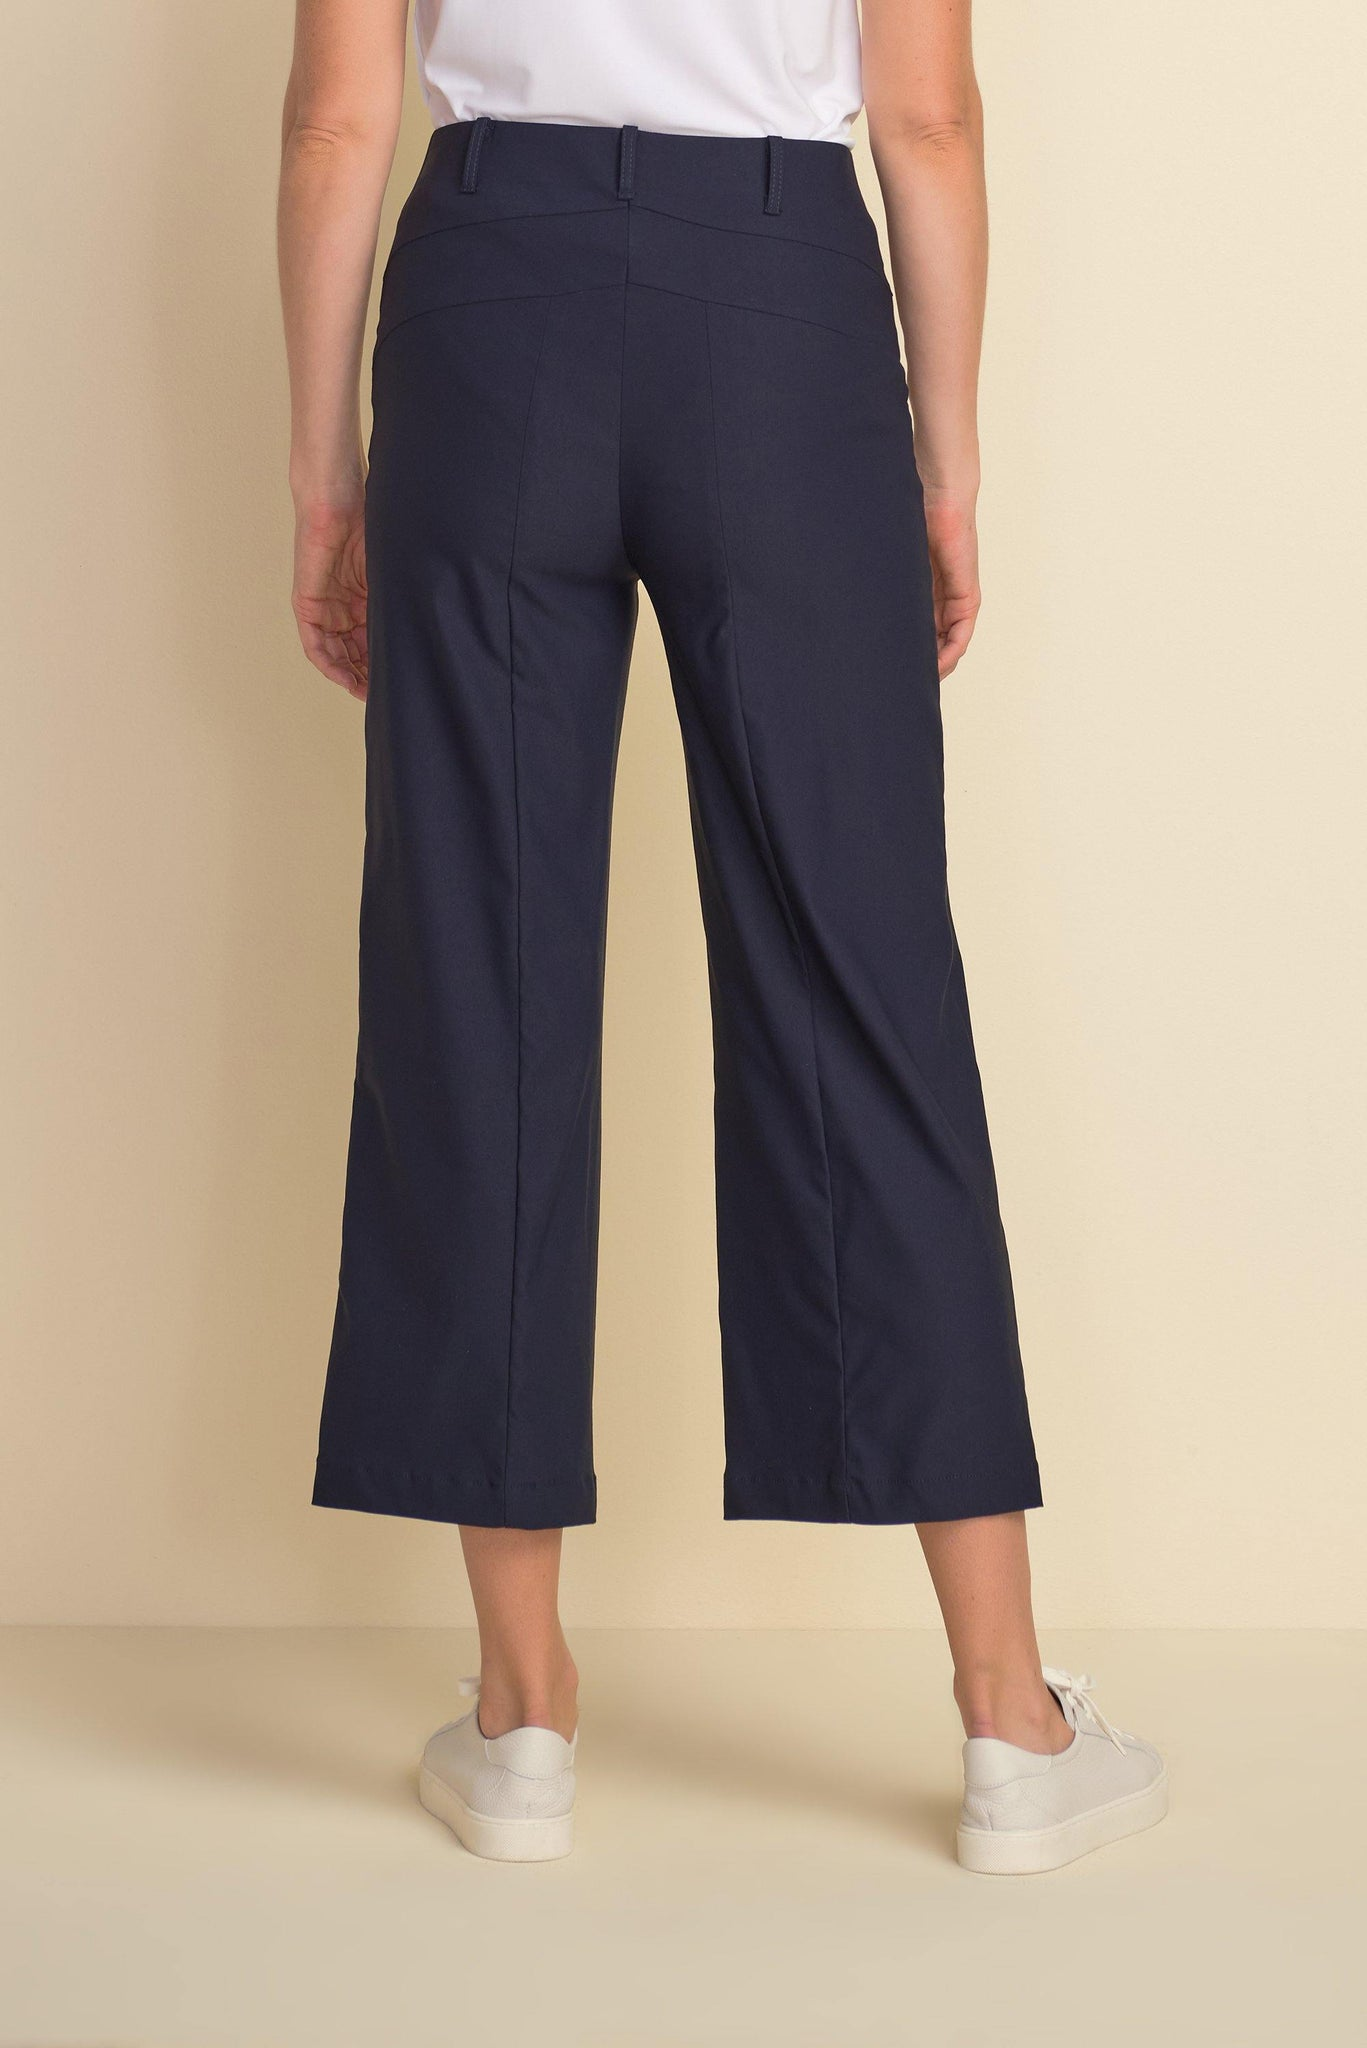 Wide Legged Cropped Pants by Joseph Ribkoff - Weekends on 2nd Ave